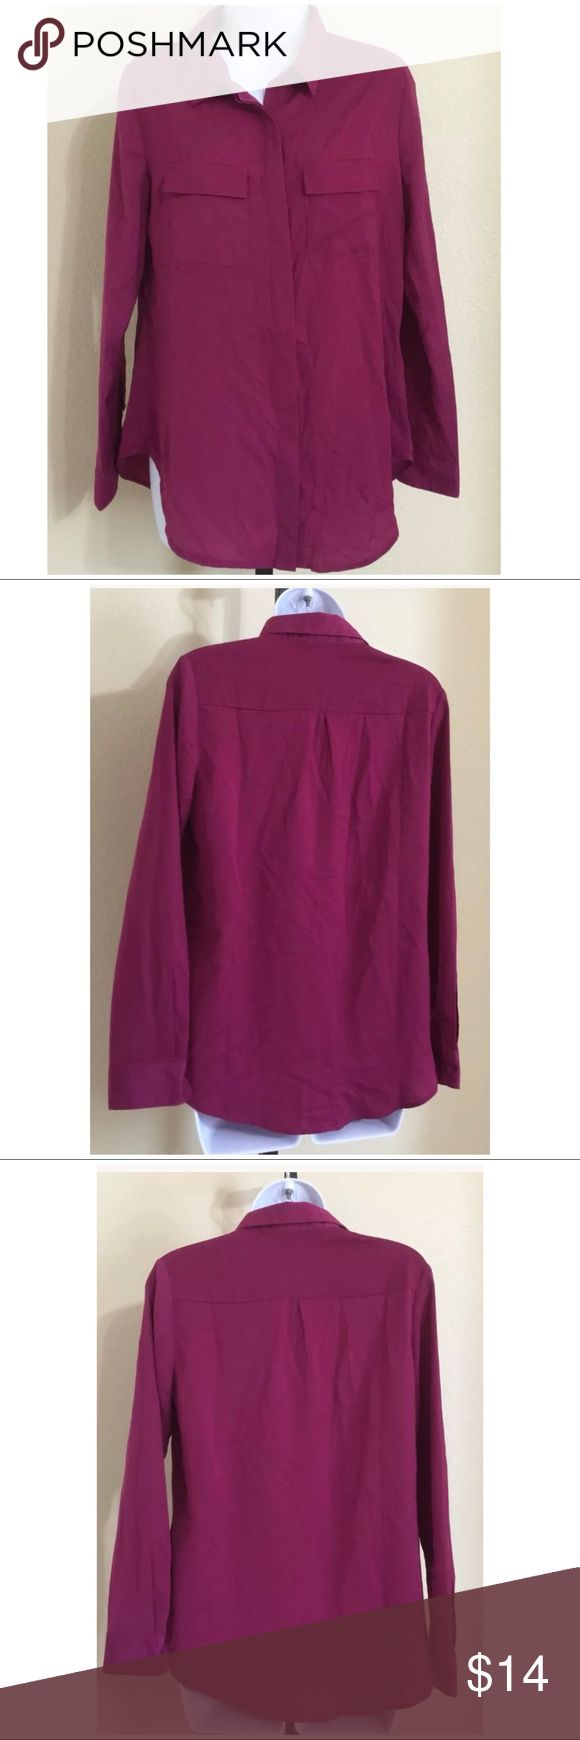 Lumiere Magenta Shirt Size M Lumiere Women's Button down Shirt Size M Purple Color Long Sleeve 1 Button cuffs Hidden Button Row 2 Front Pockets With Flaps & Hidden Button closure Hand Wash 97% Polyester 3% Spandex Armpit to Armpit Approx. 19 Inches Length From Rear Collar Seam Approx. 27 Inches Shoulder Approx. 15 Inches Sleeve From Shoulder Seam Approx. 23 Inches Please Measure To Ensure A Proper Fit MSRP $ 38.00 New With Tag Lumiere Tops Button Down Shirts